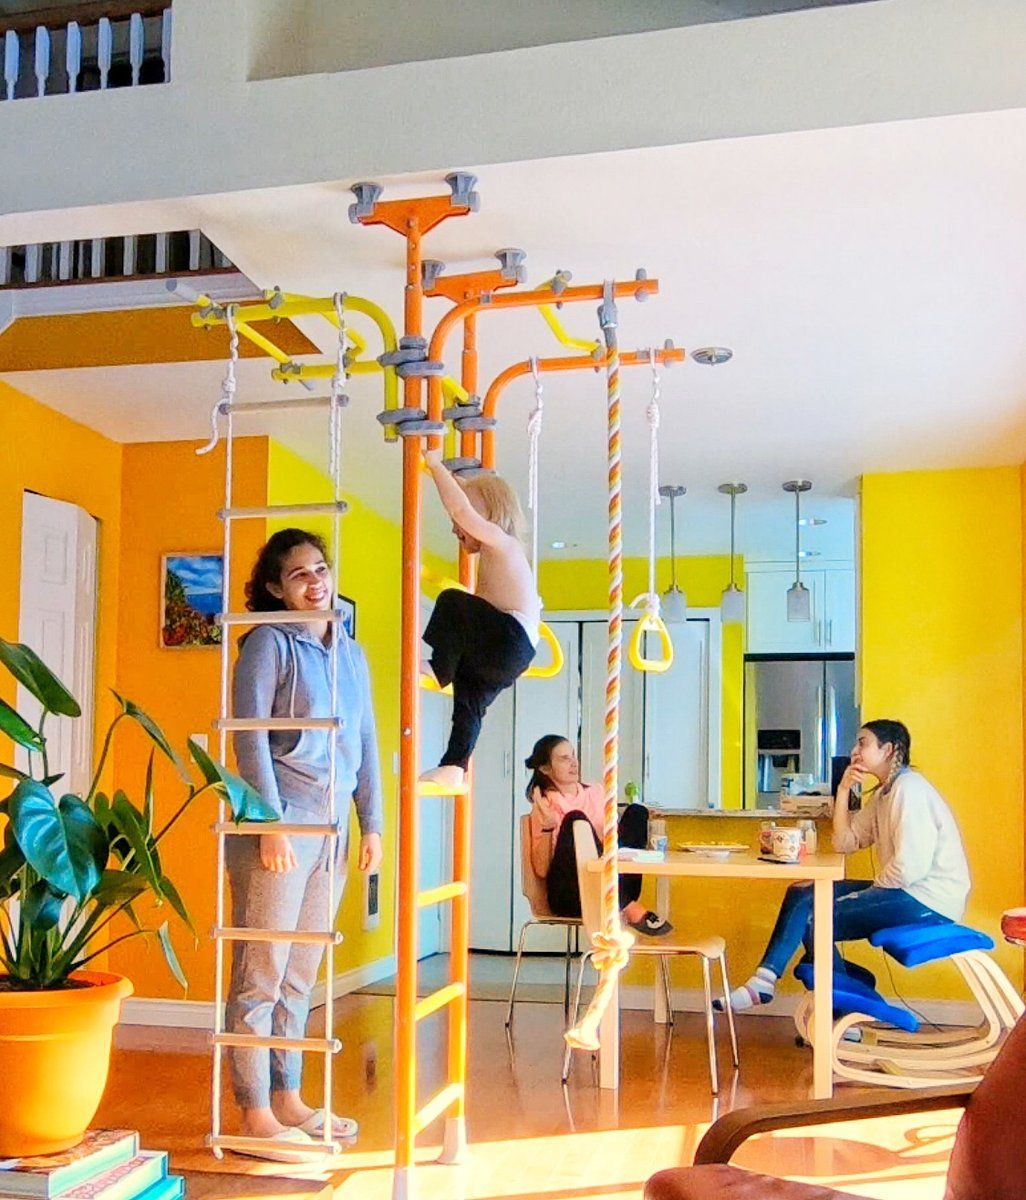 Play Gyms For Kids For Home Use Tension Mounted Floor To Ceiling Or Wall Mounted Frames With A Variety Of Add Ons Fr Kids Gym Kids Indoor Playground Play Gyms